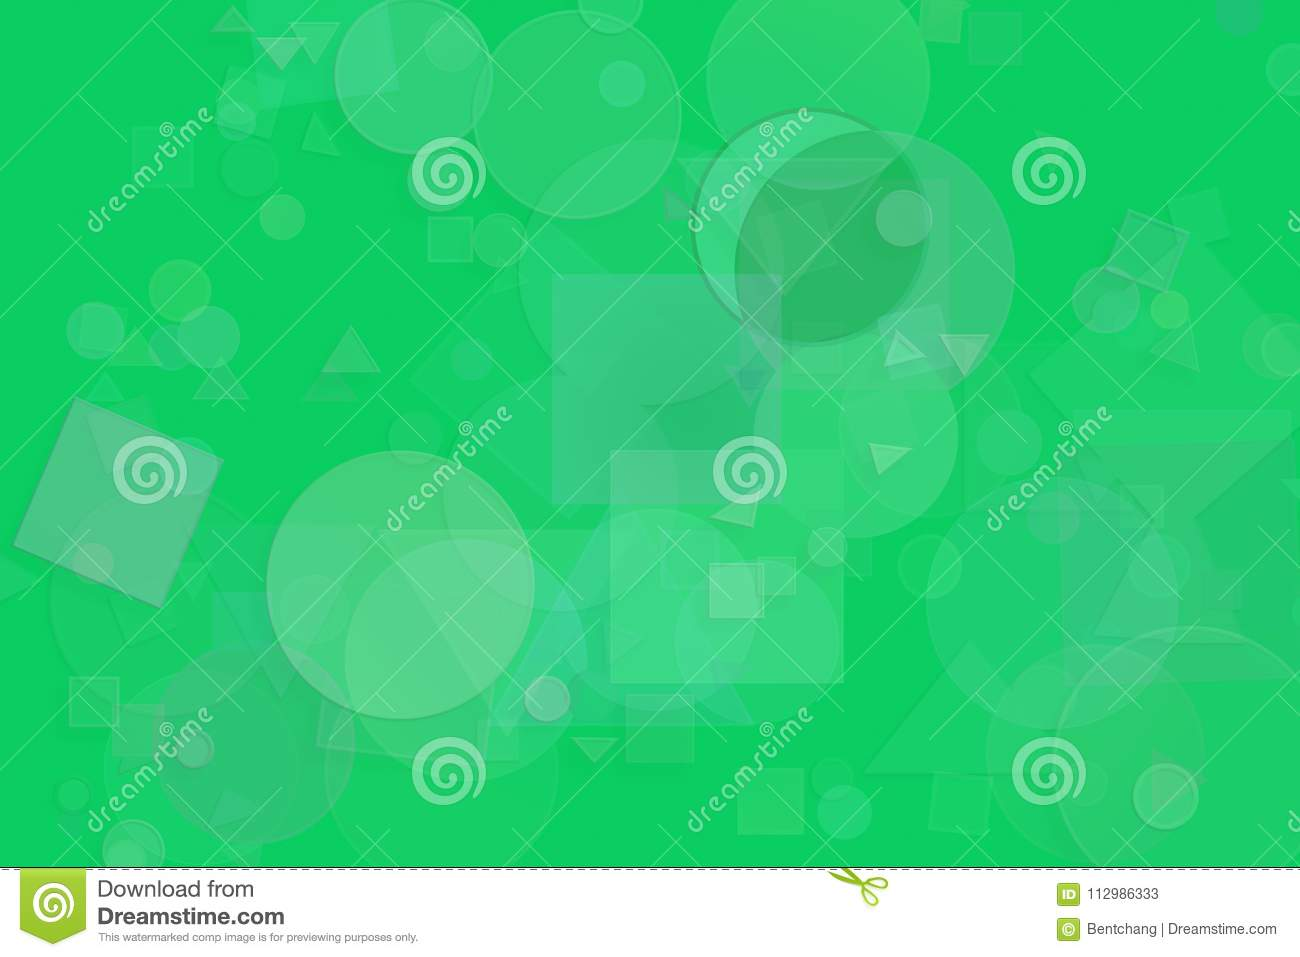 Background for graphic design, pattern shape. Painting, fashion, oval & geometric.